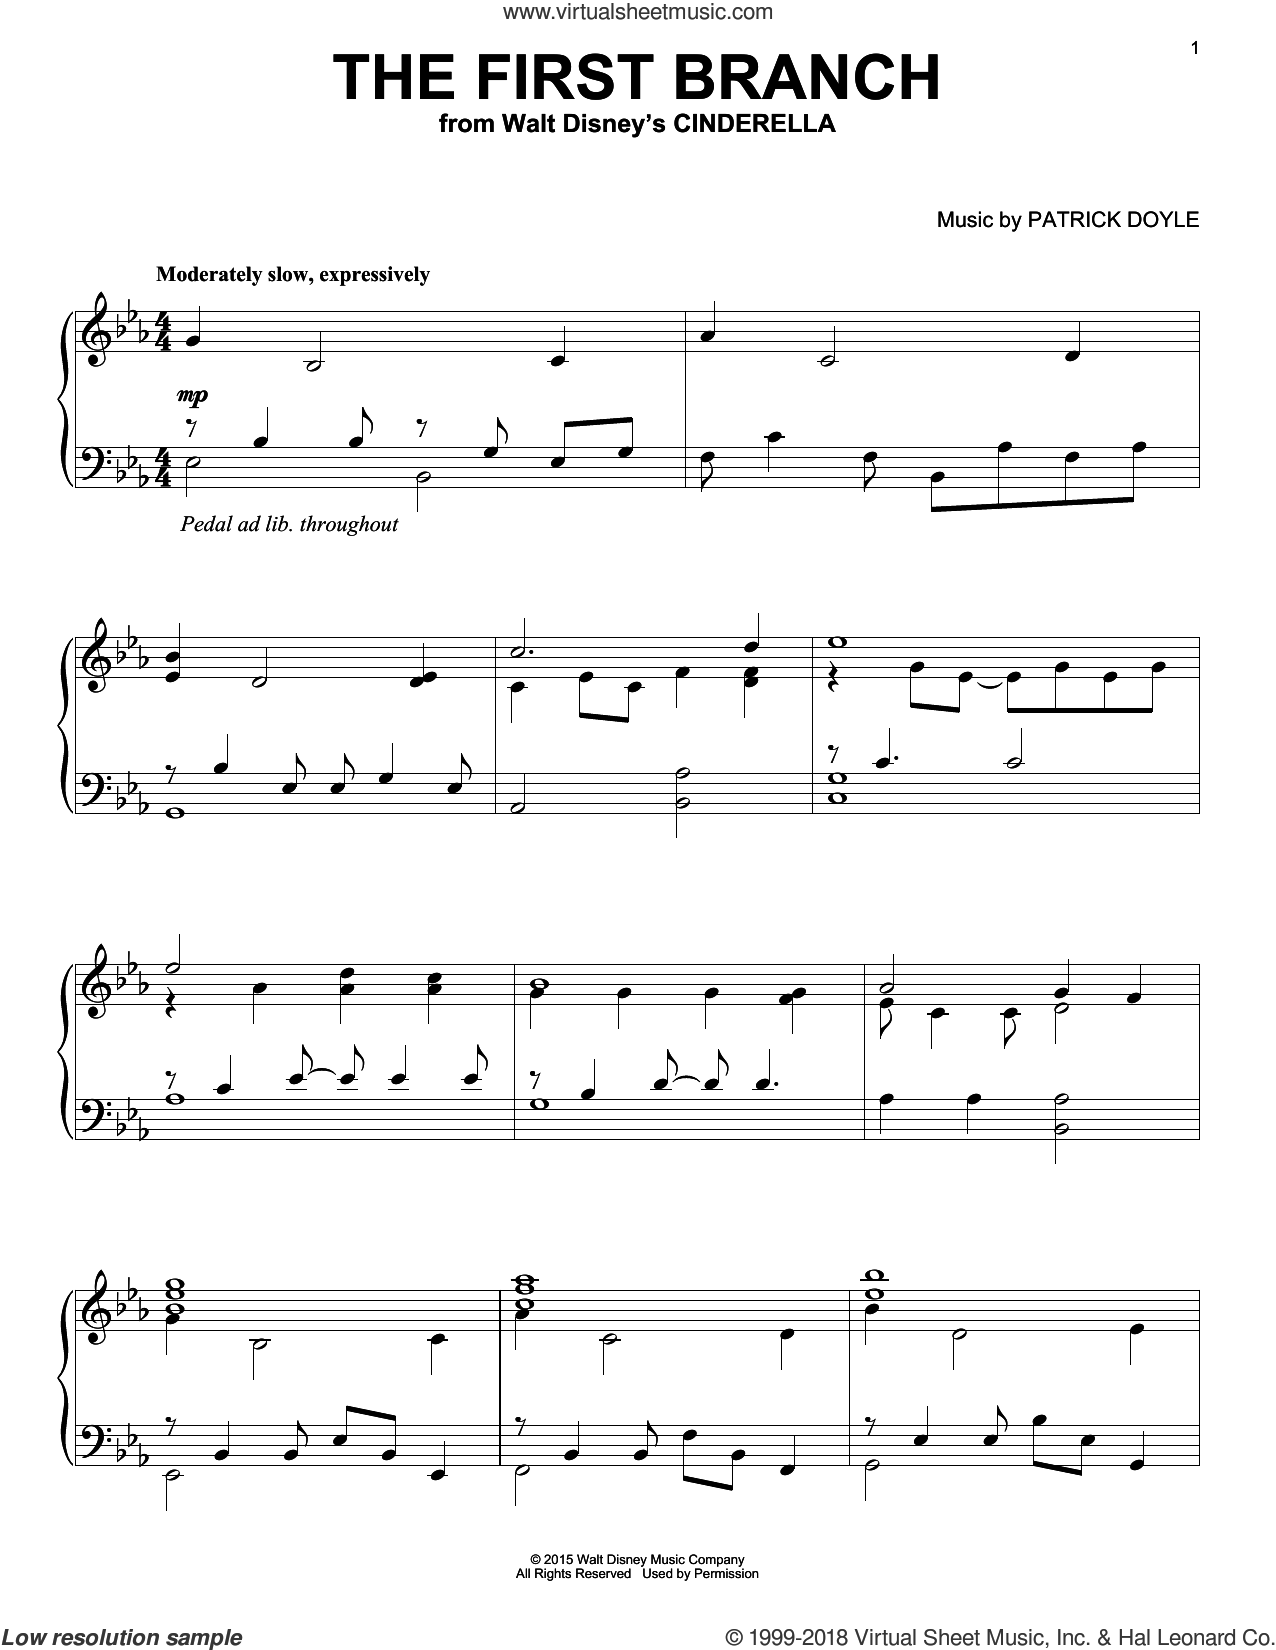 The First Branch sheet music for piano solo by Patrick Doyle, intermediate skill level